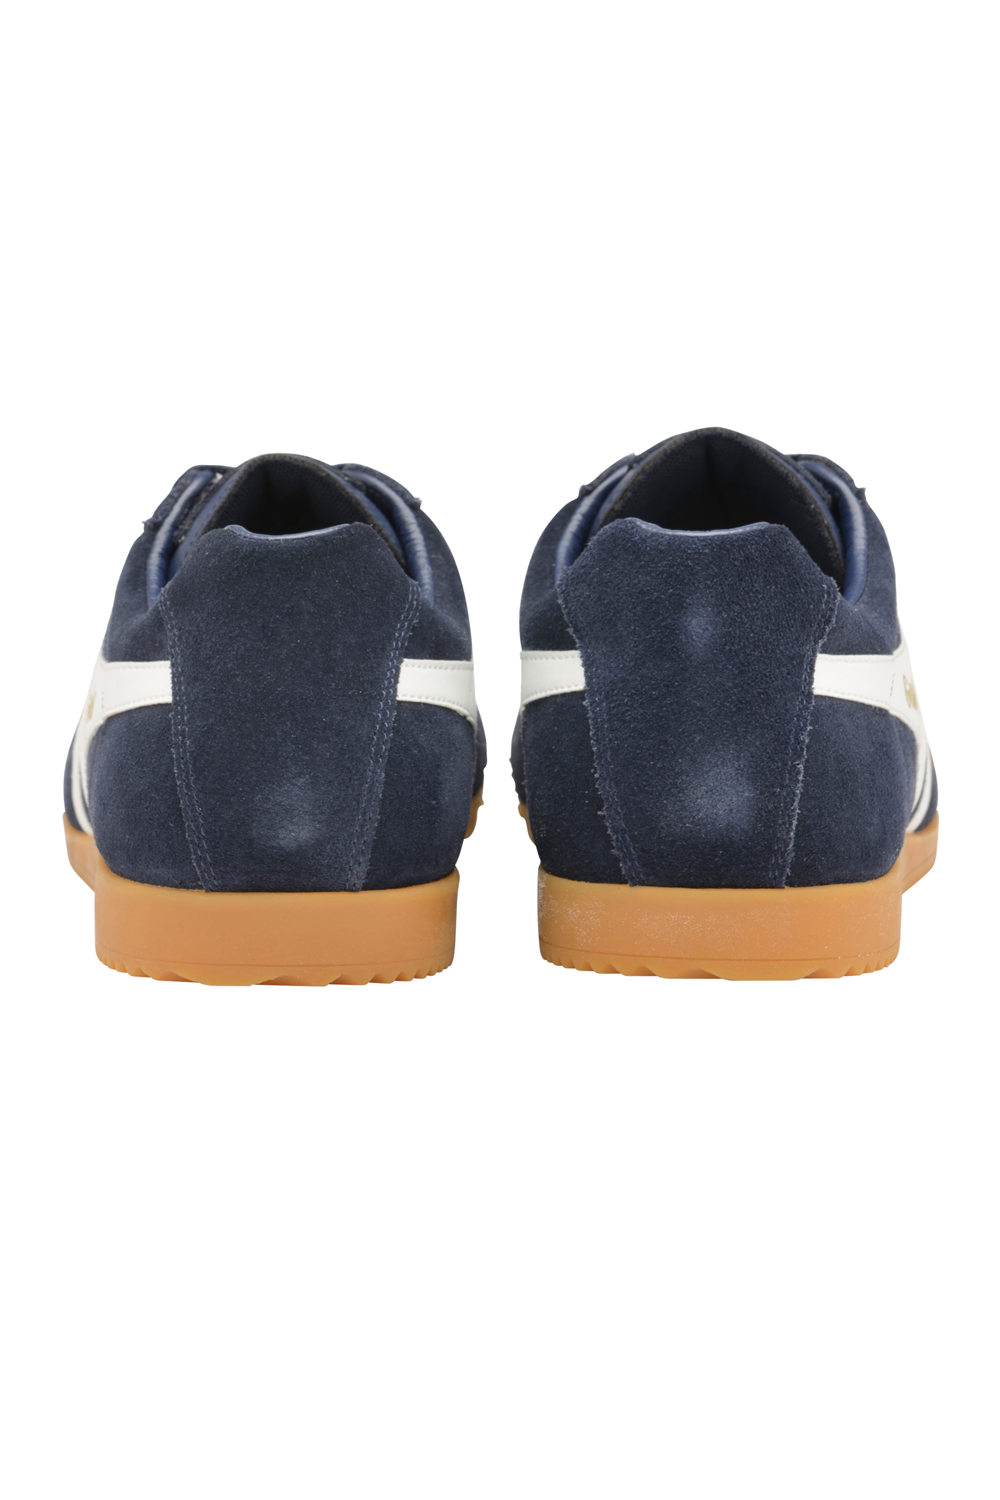 Gola-Harrier-Suede-Classic-Vintage-Lace-Up-Sneakers-Mens-Trainers-Low-Top-Shoes thumbnail 5